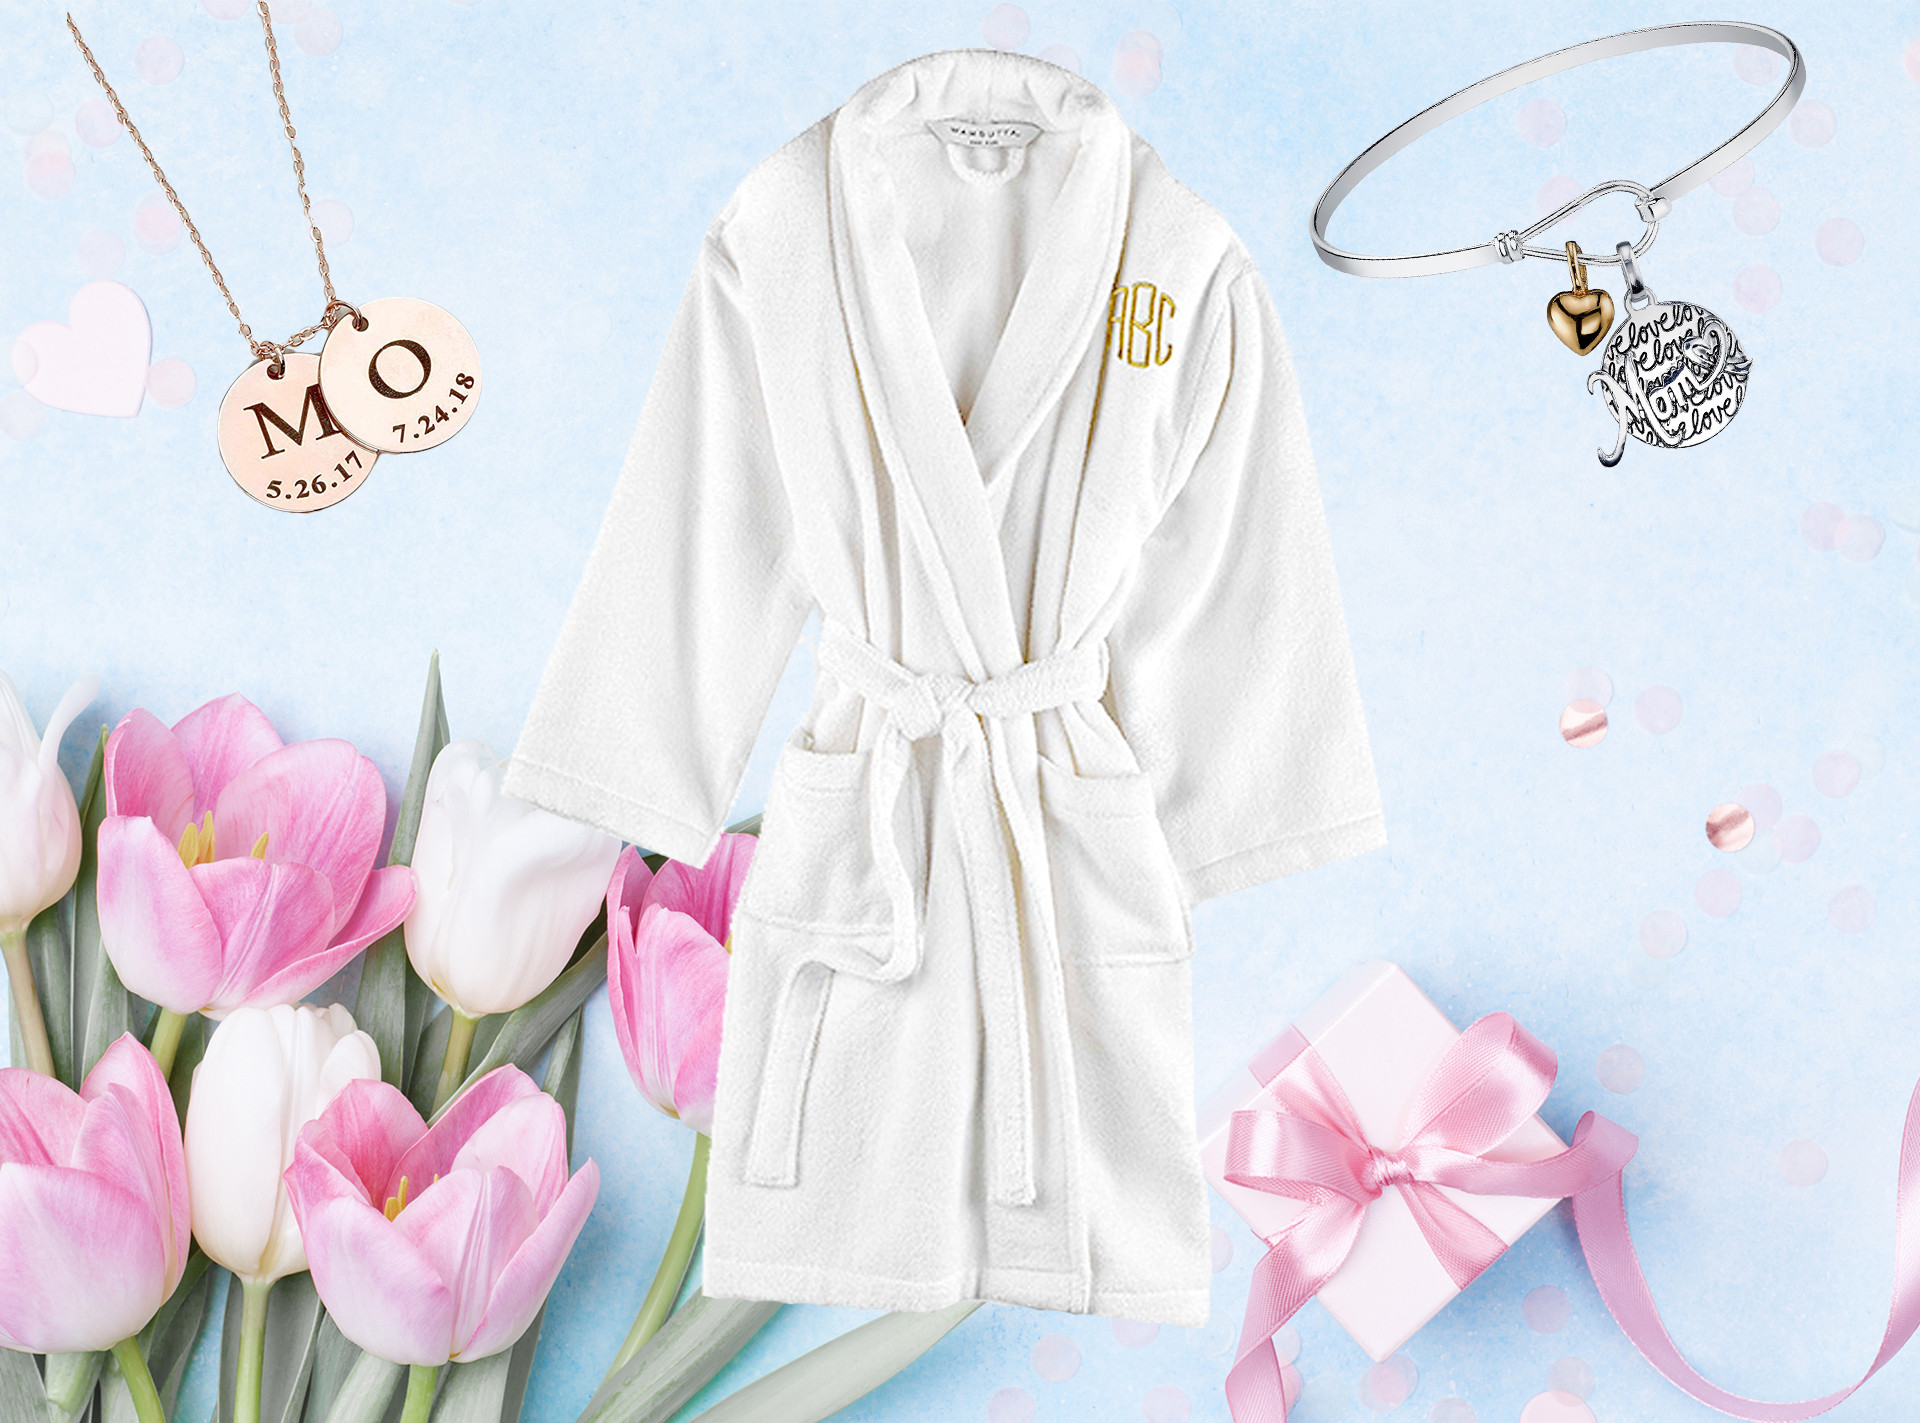 E-Comm: Personalized Mother's Day Gifts